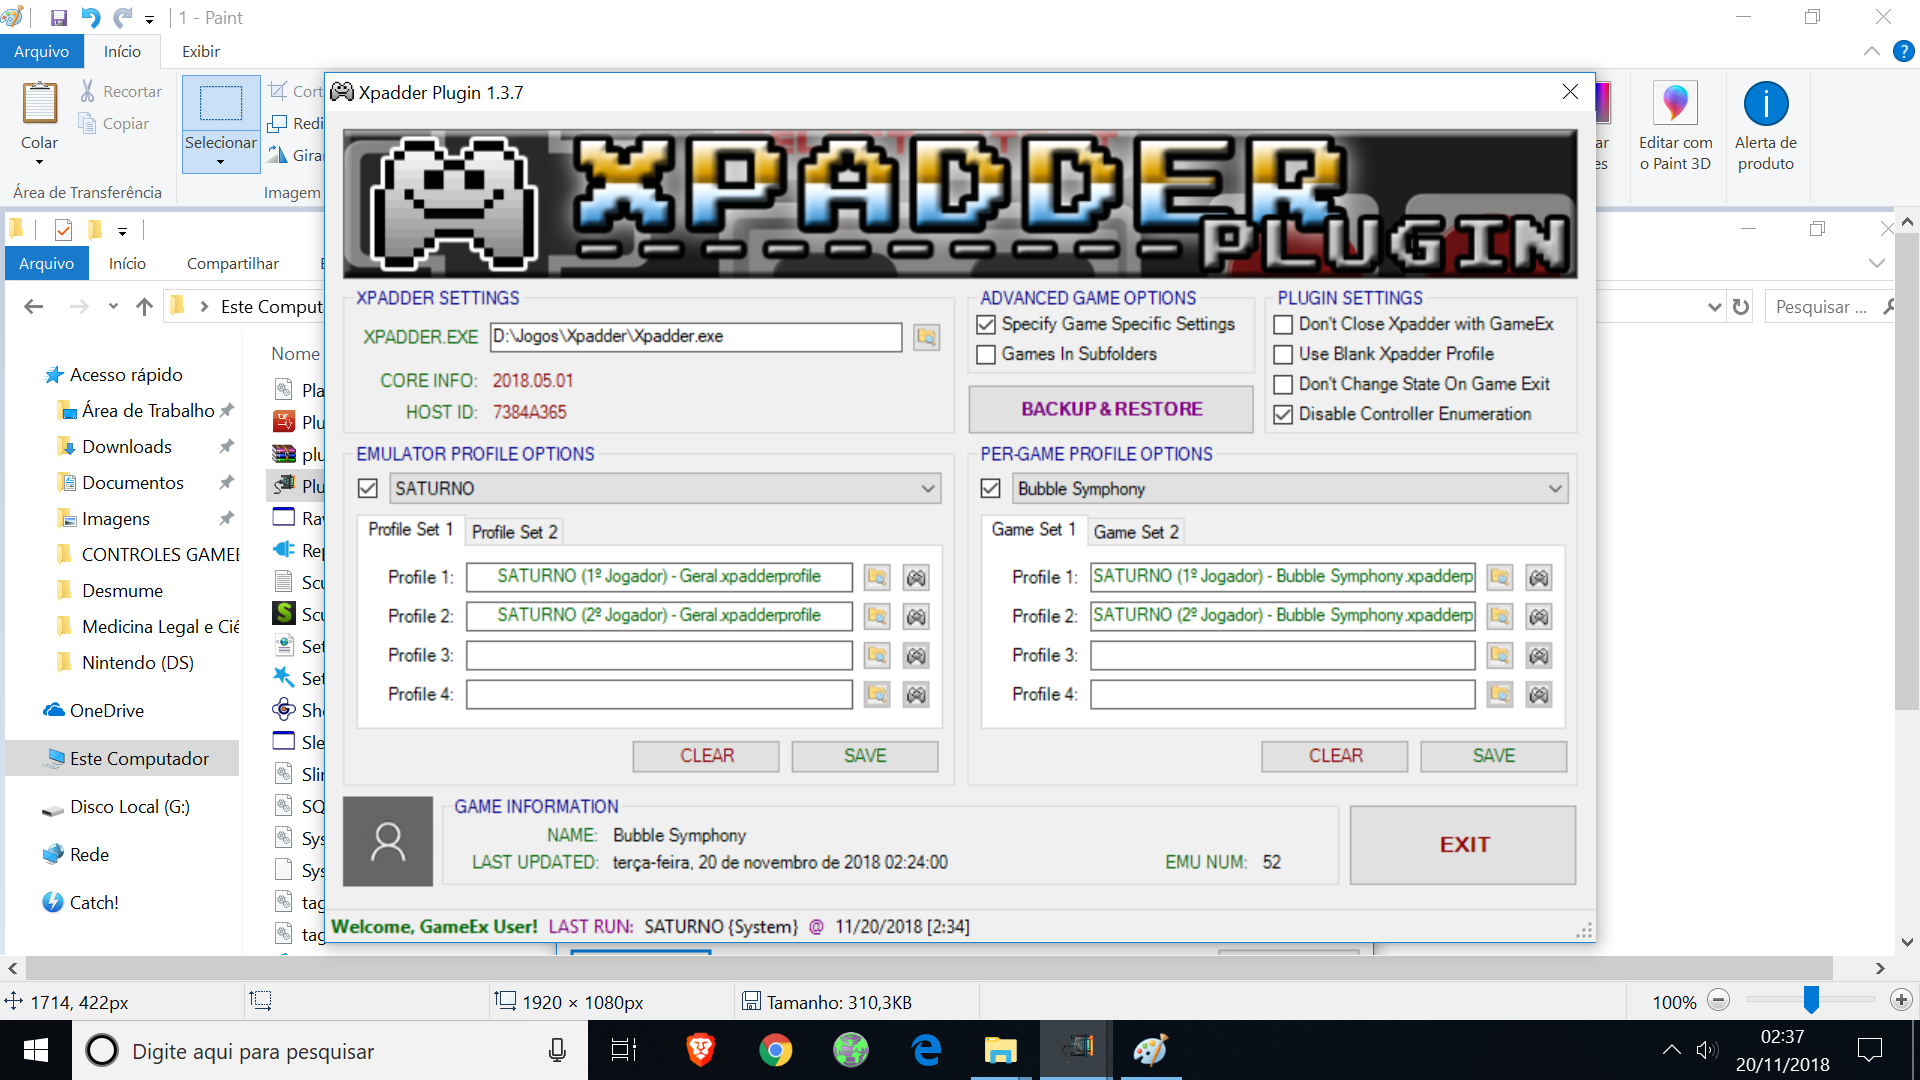 RESOLVED] Xpadder Plugin: Game Specific Settings Are Not